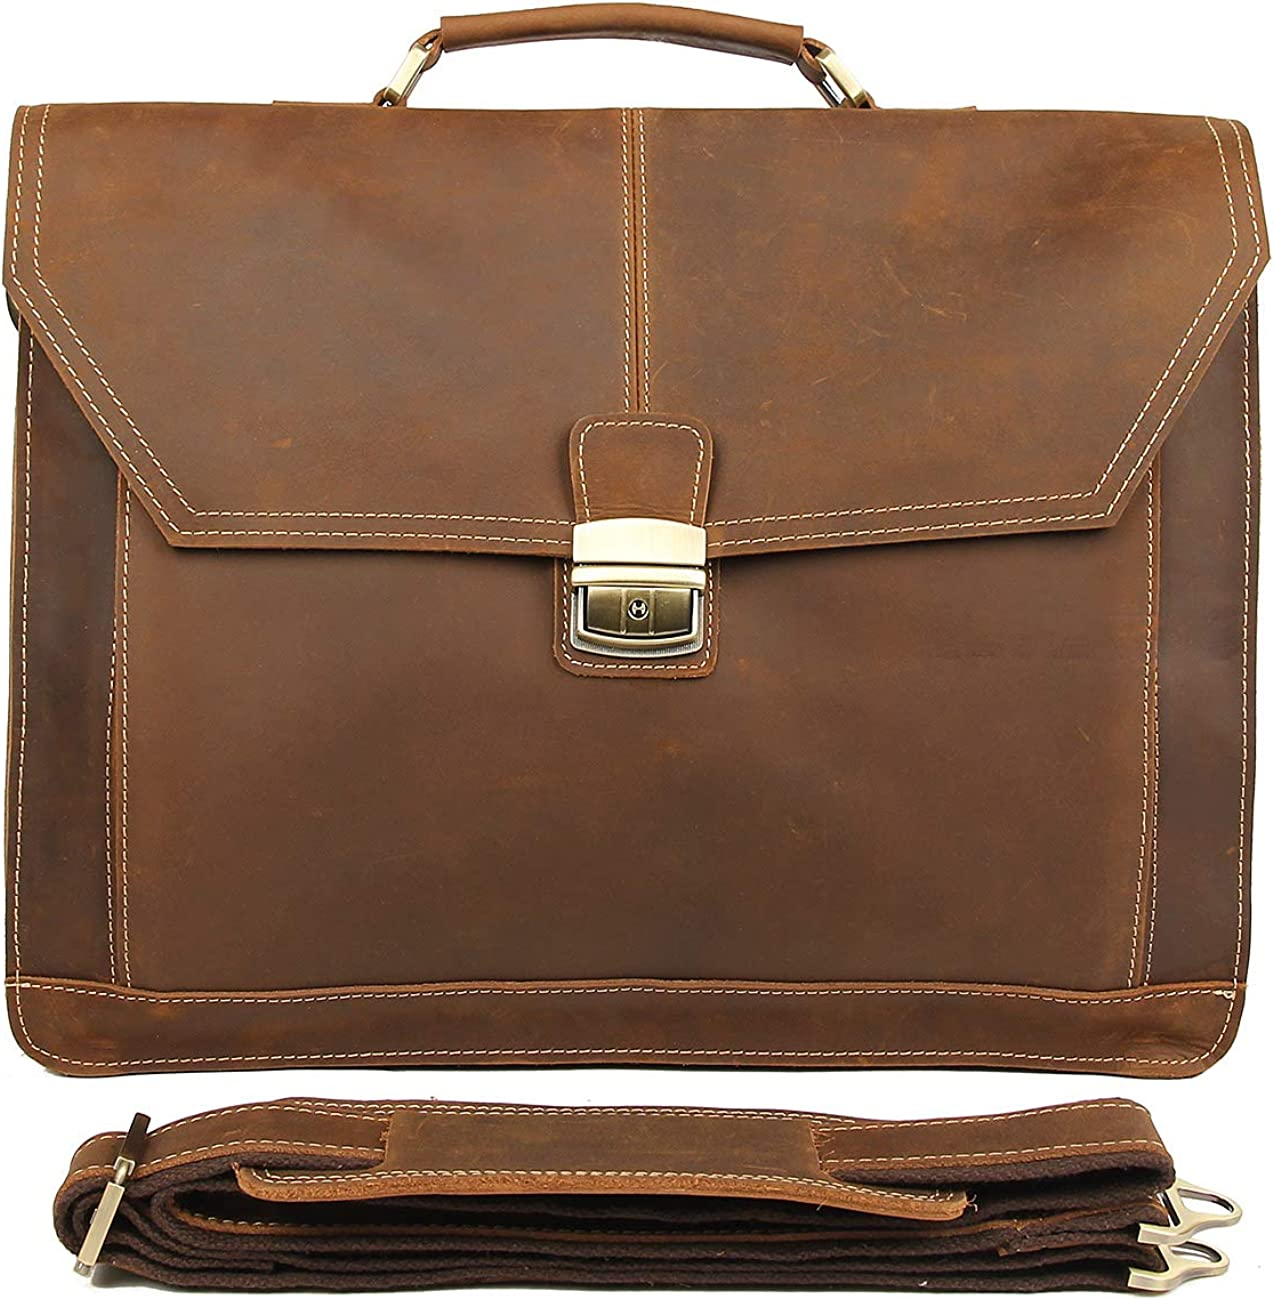 Polare Leather Men s Briefcase laptop messenger Bag satchel Fit 16.5 Inch Laptop Tote